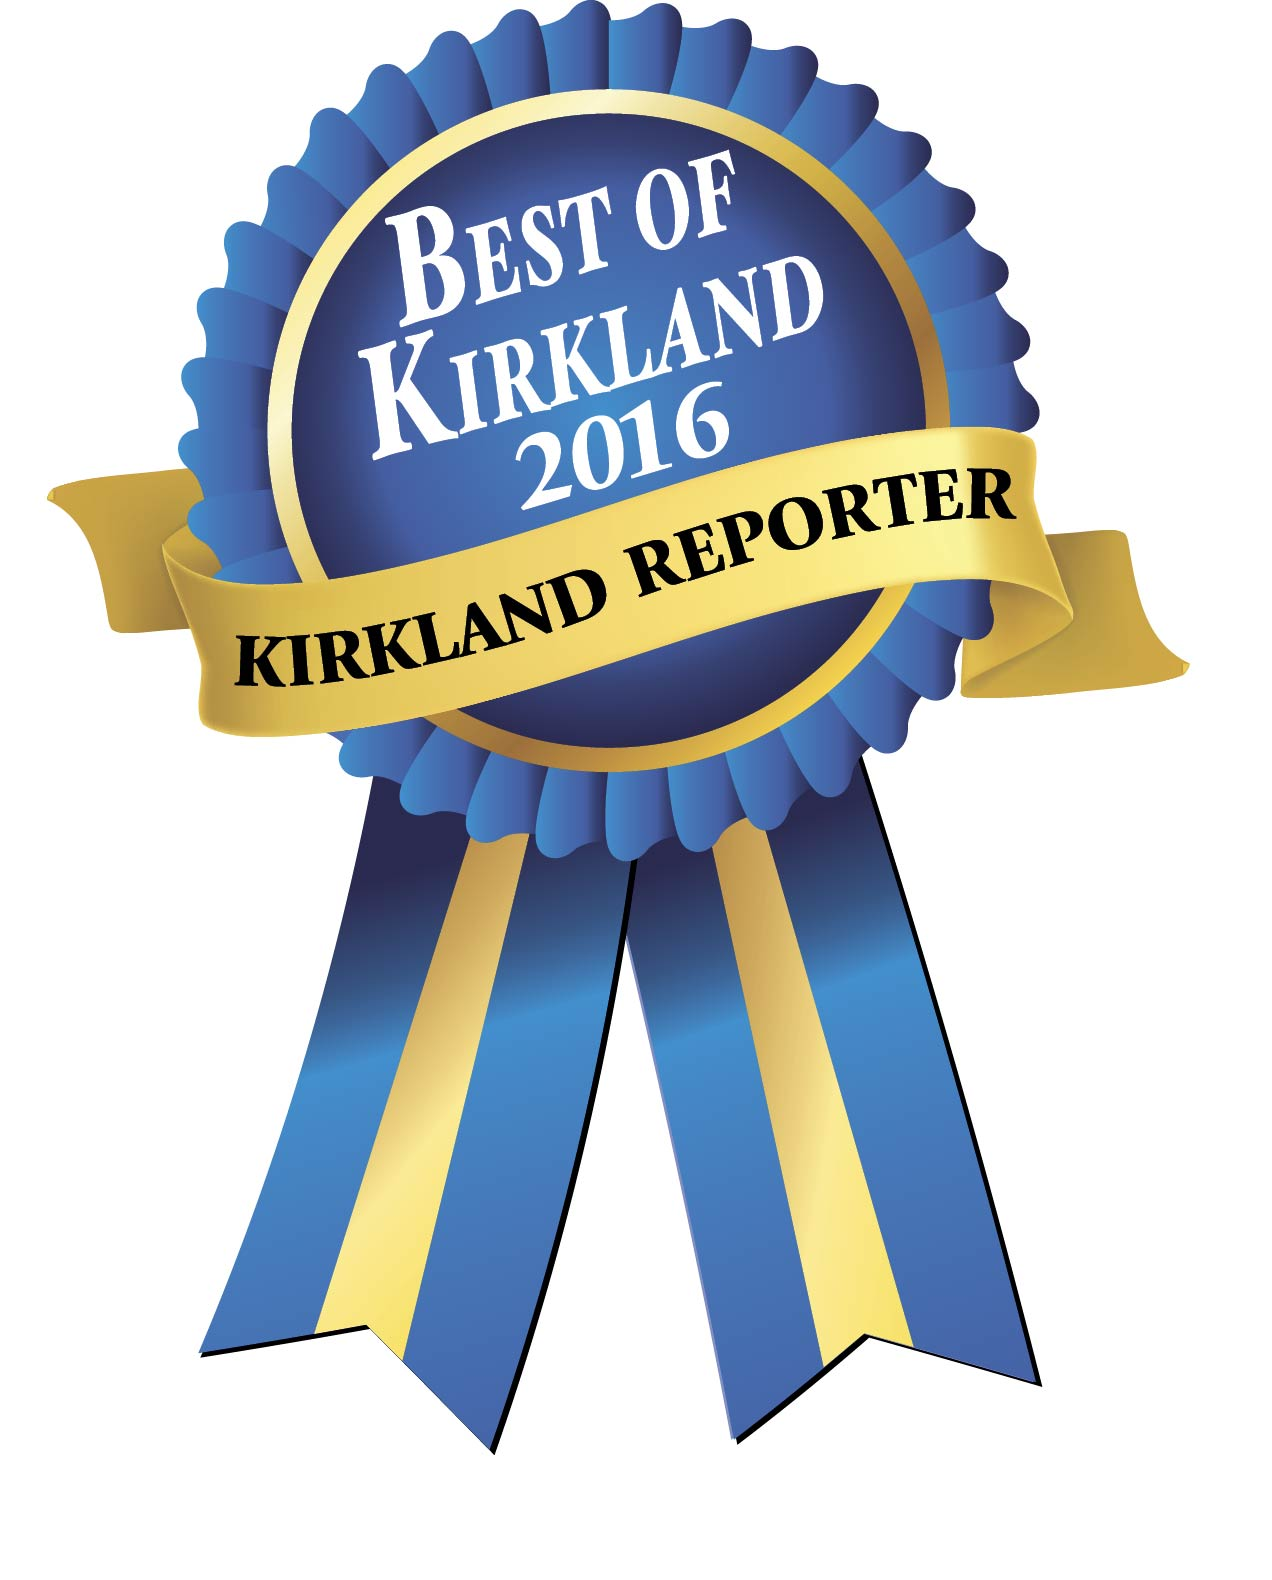 Best of Kirkland winner